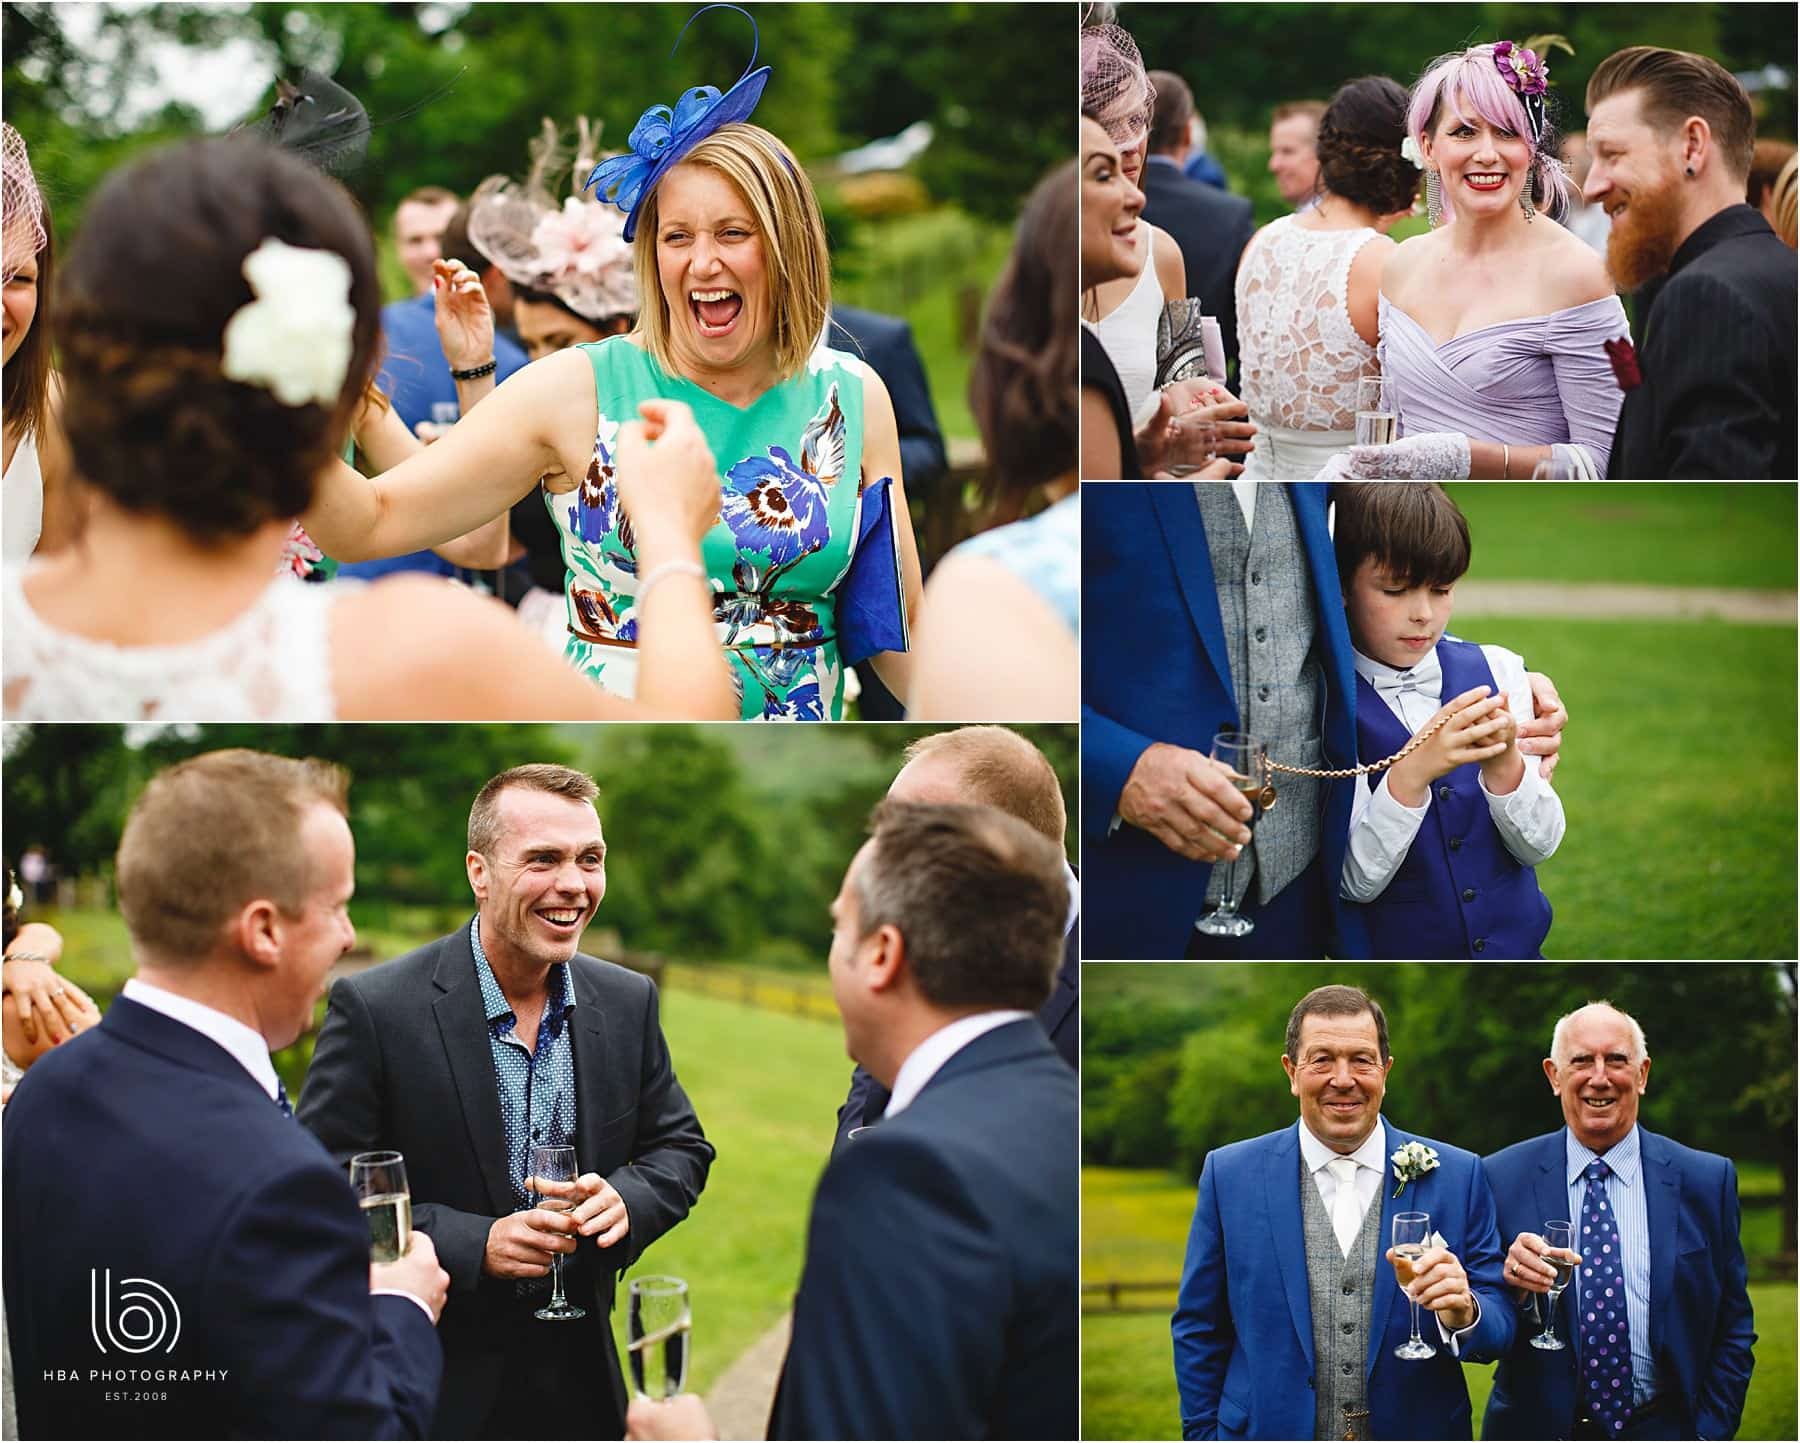 all the weddings guests having a great time